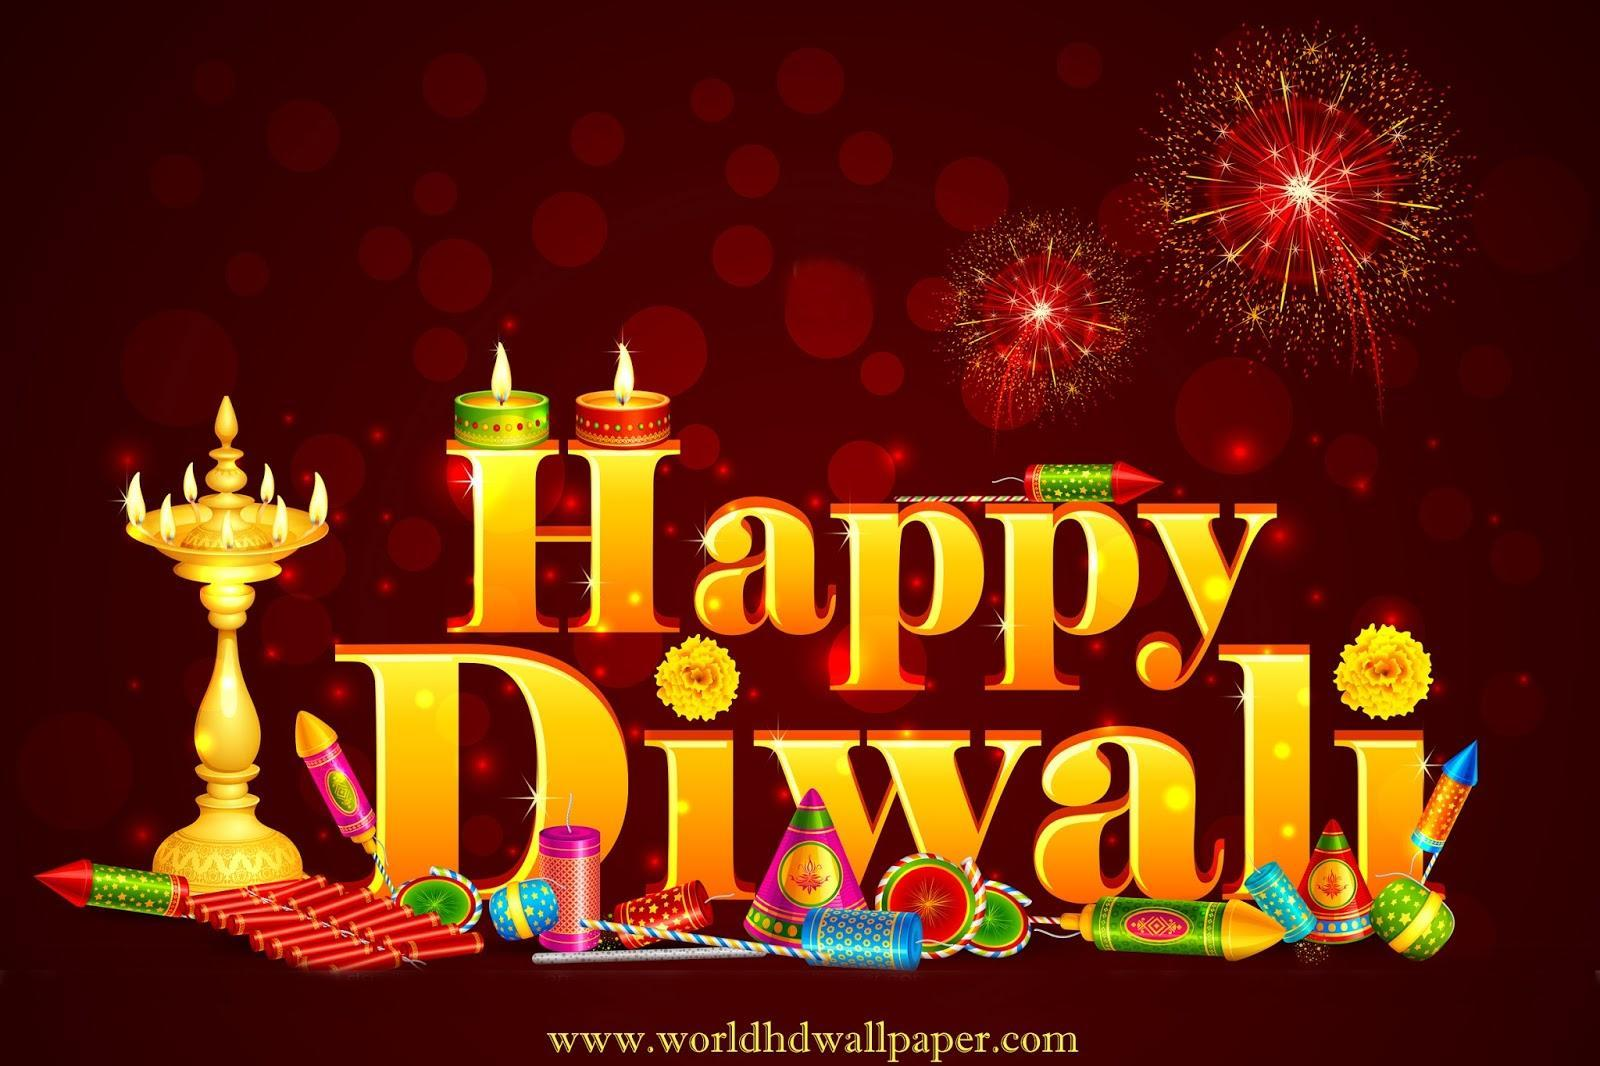 1600x1066 Happy Diwali 4k Wallpaper & Greetings for Android - APK Download